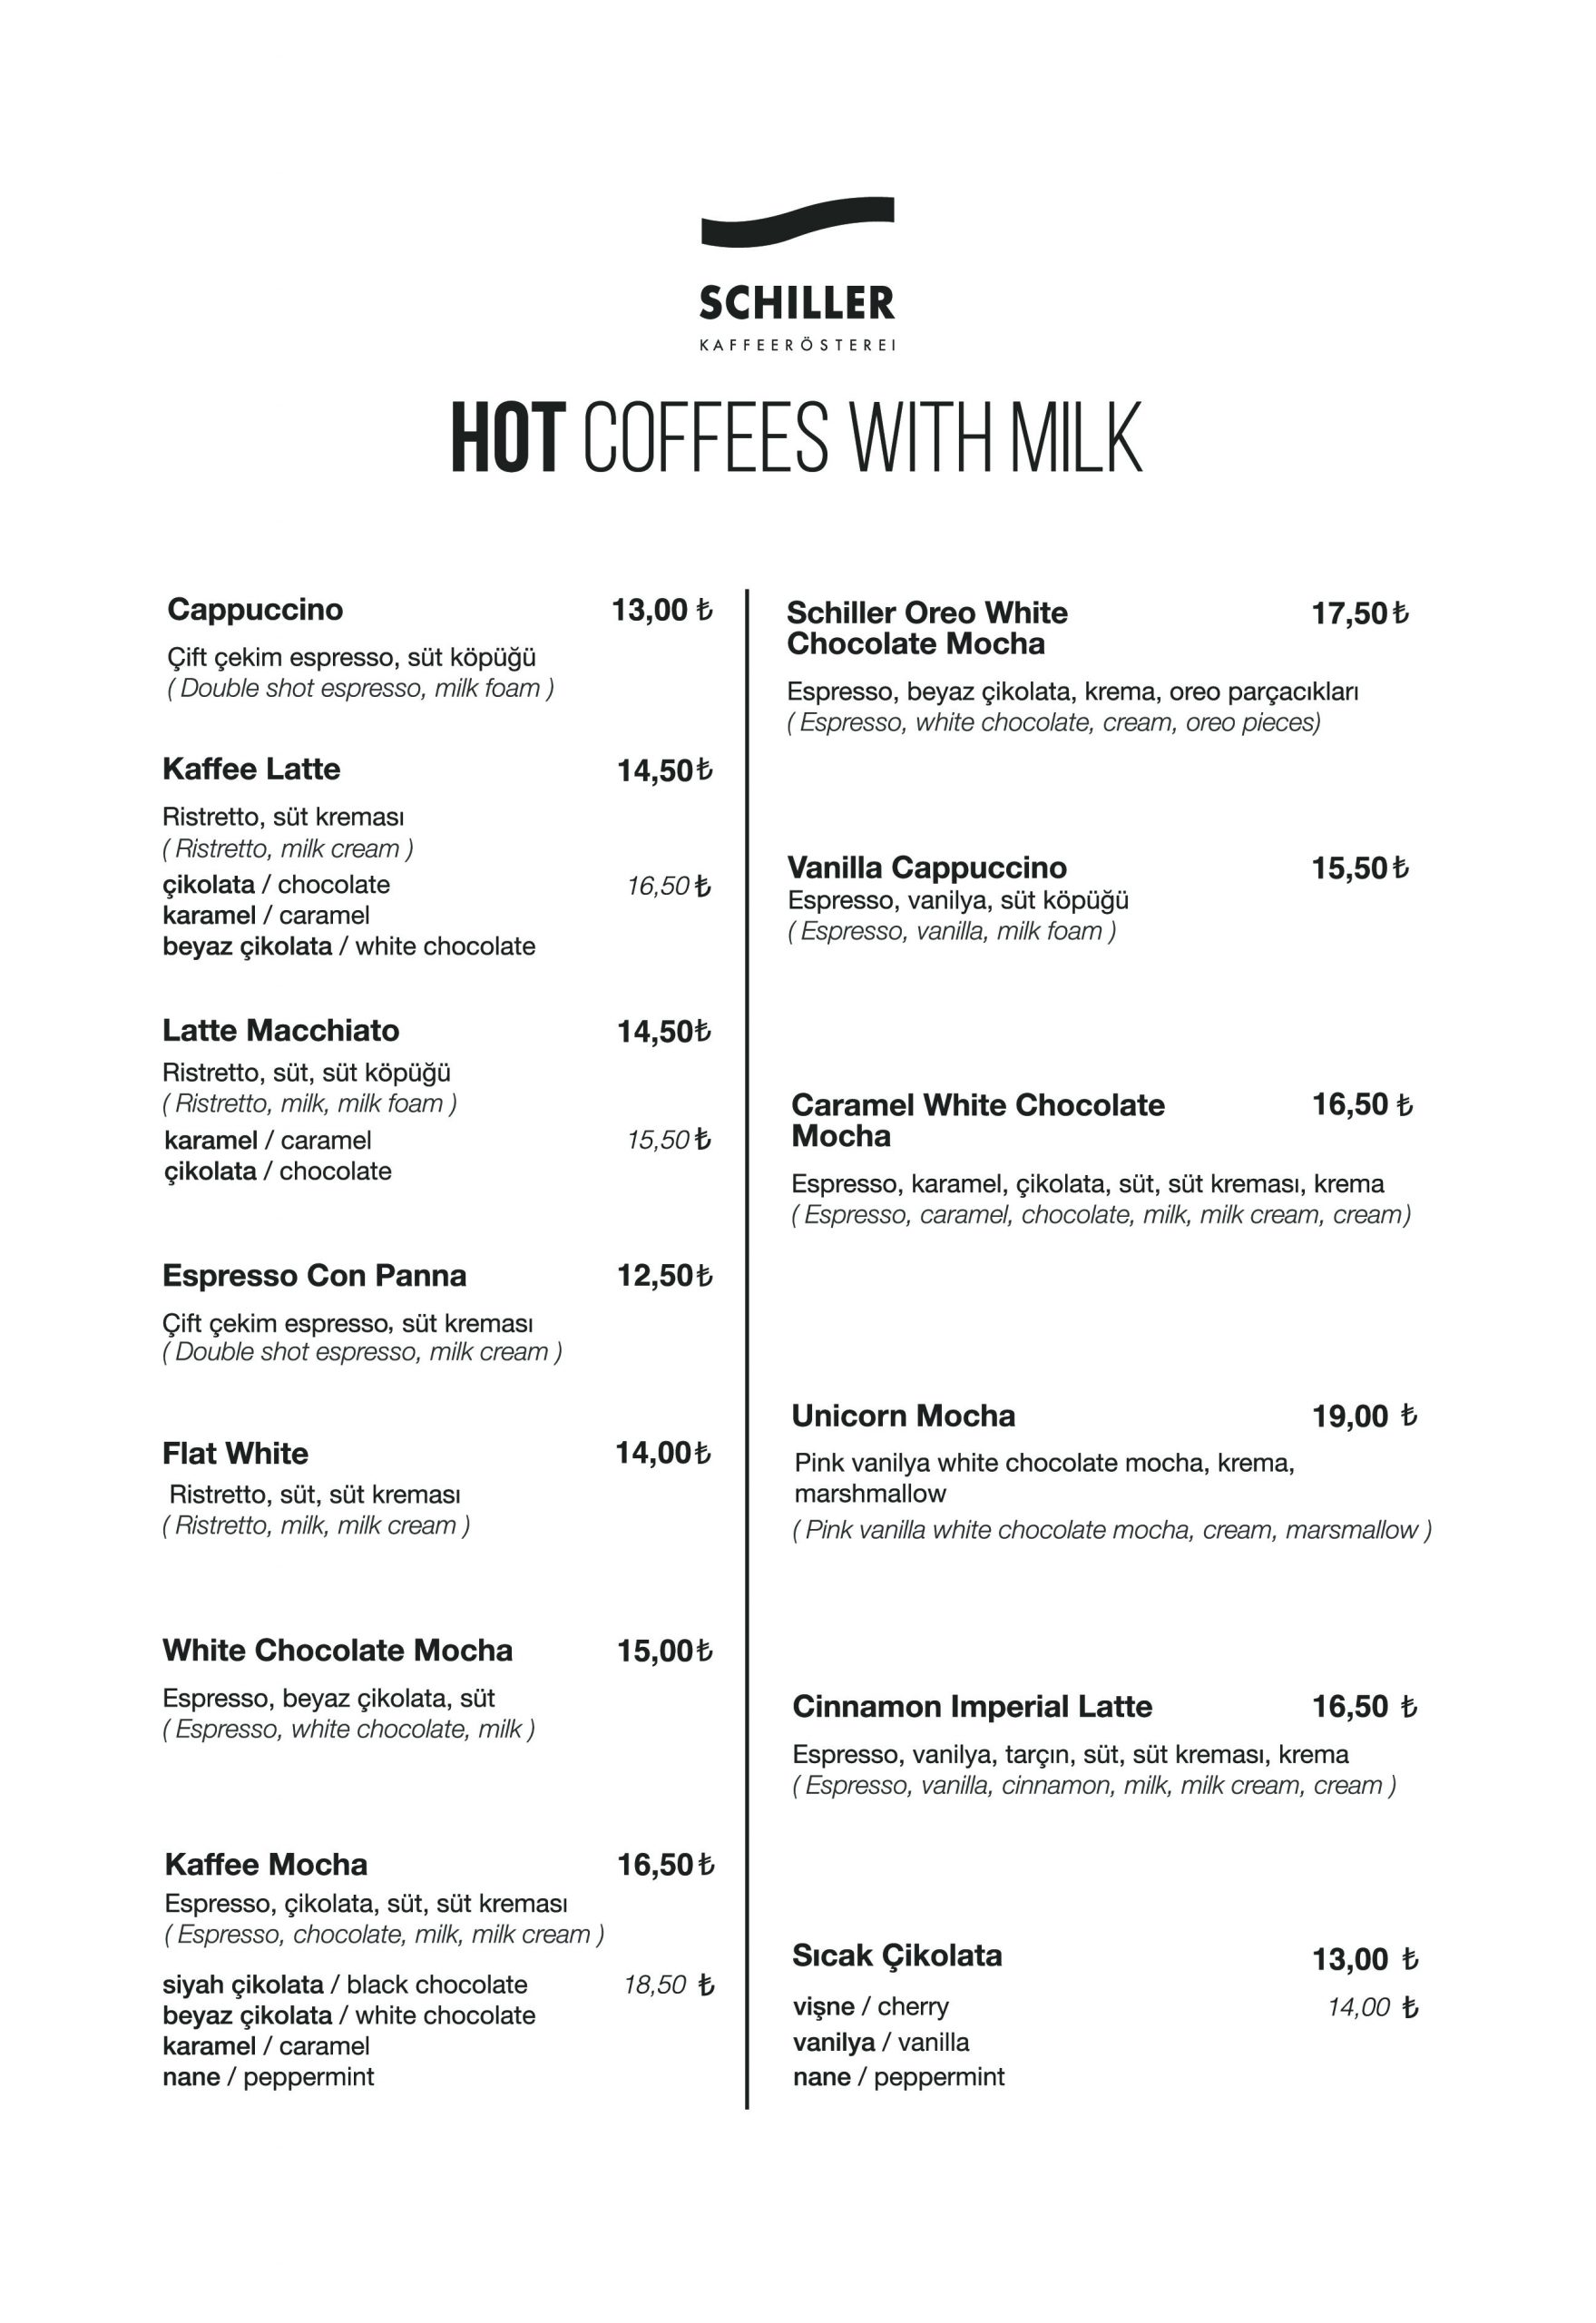 Hot Coffees with Milk